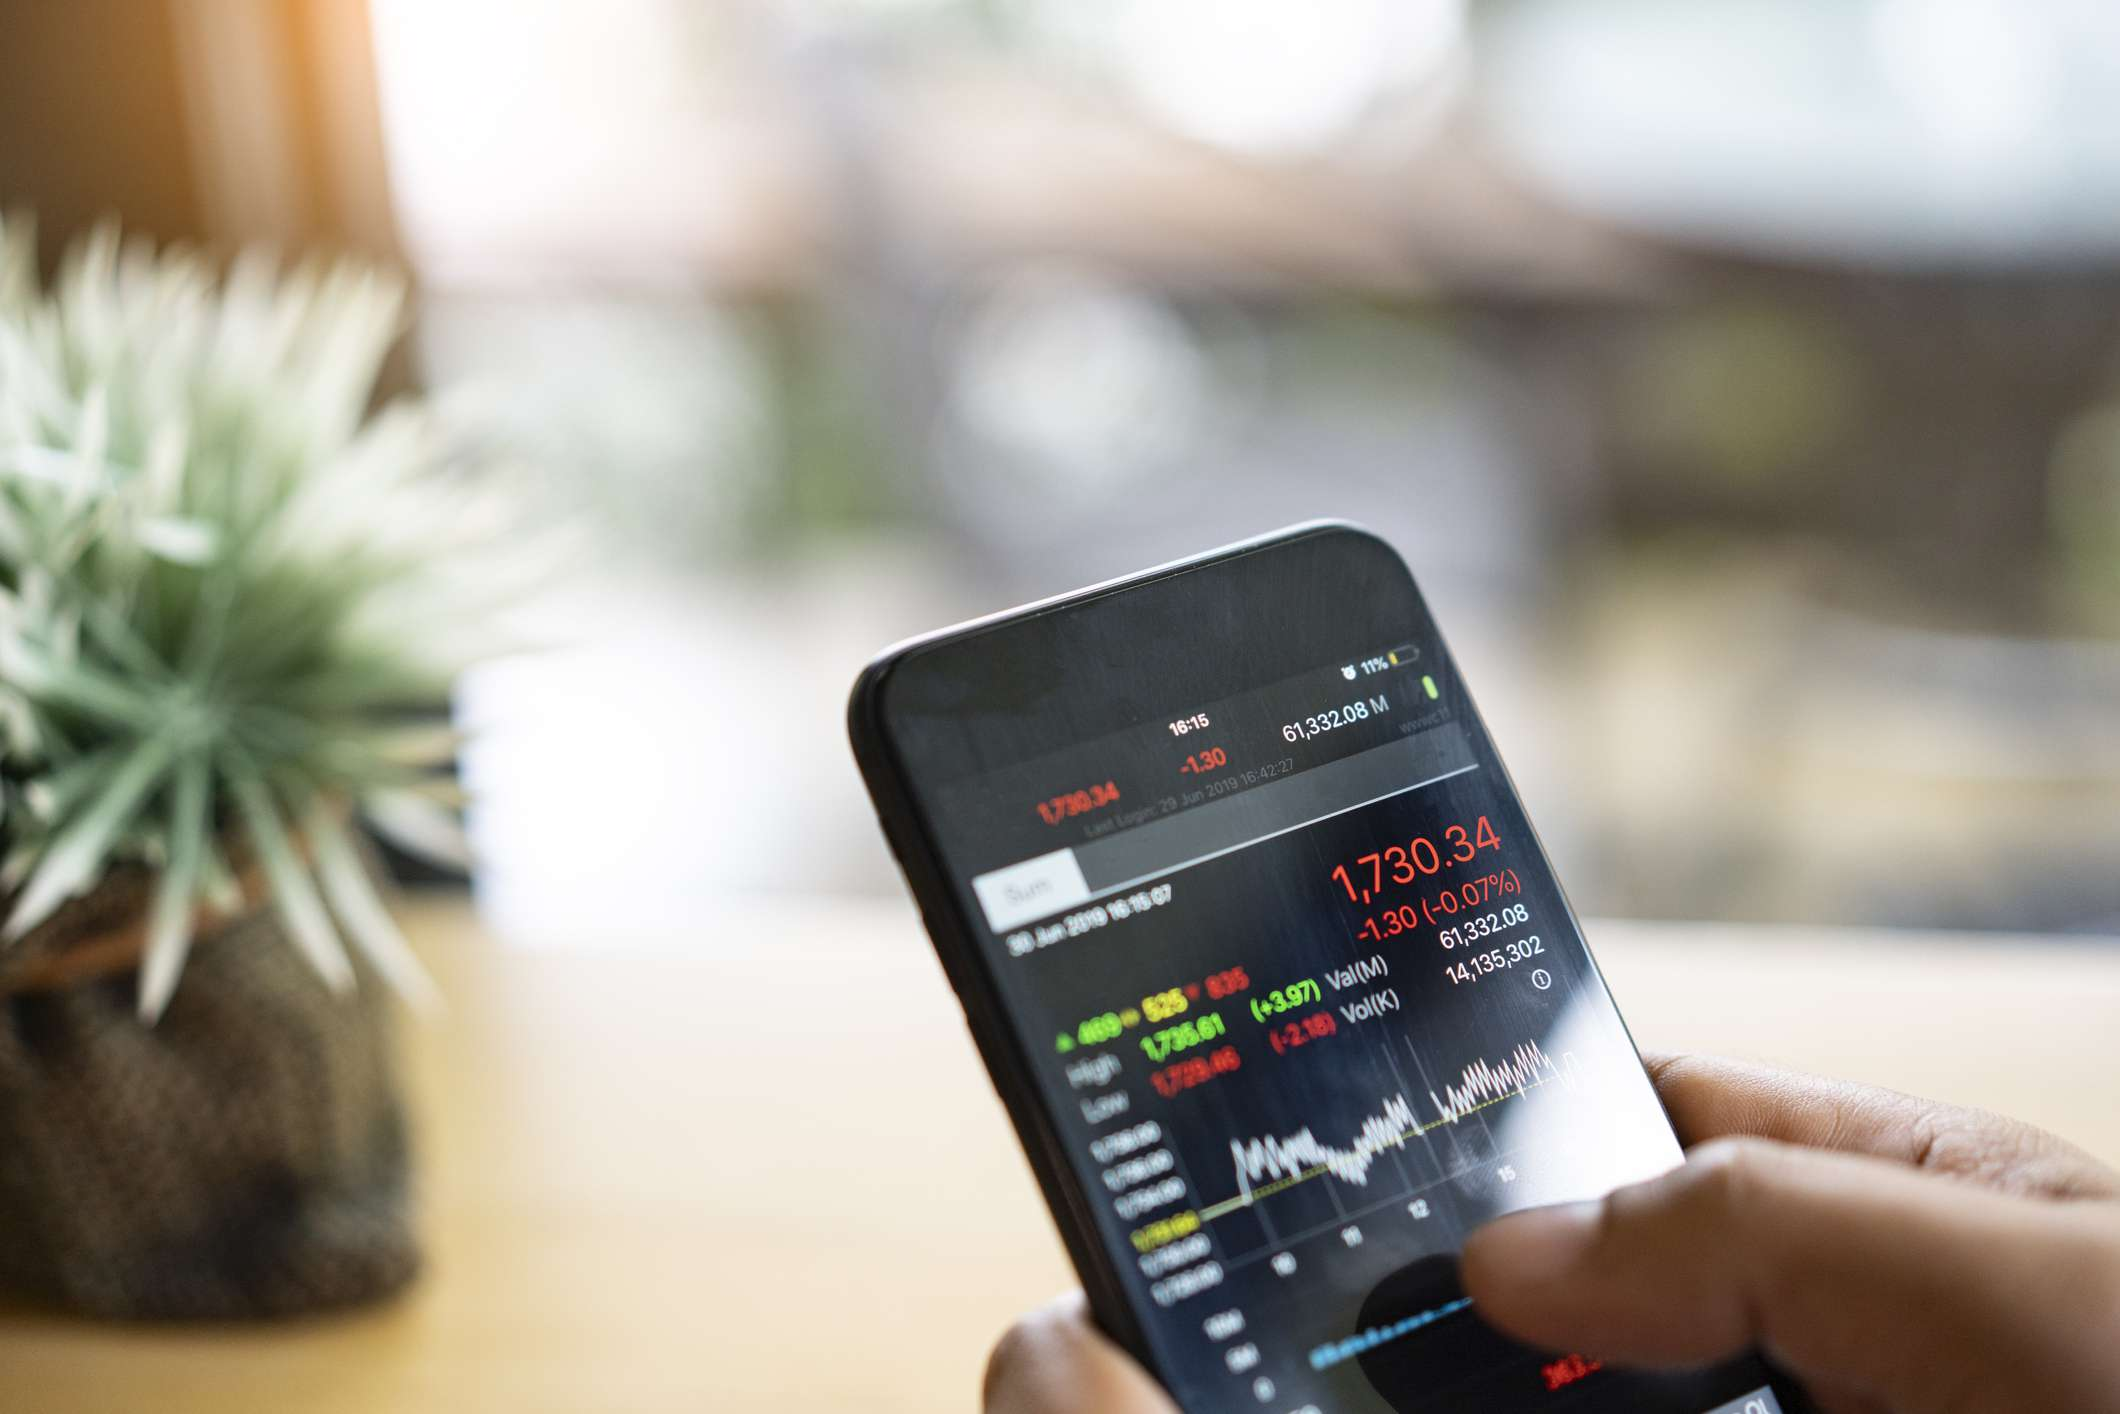 Stock market data displayed on a smartphone.